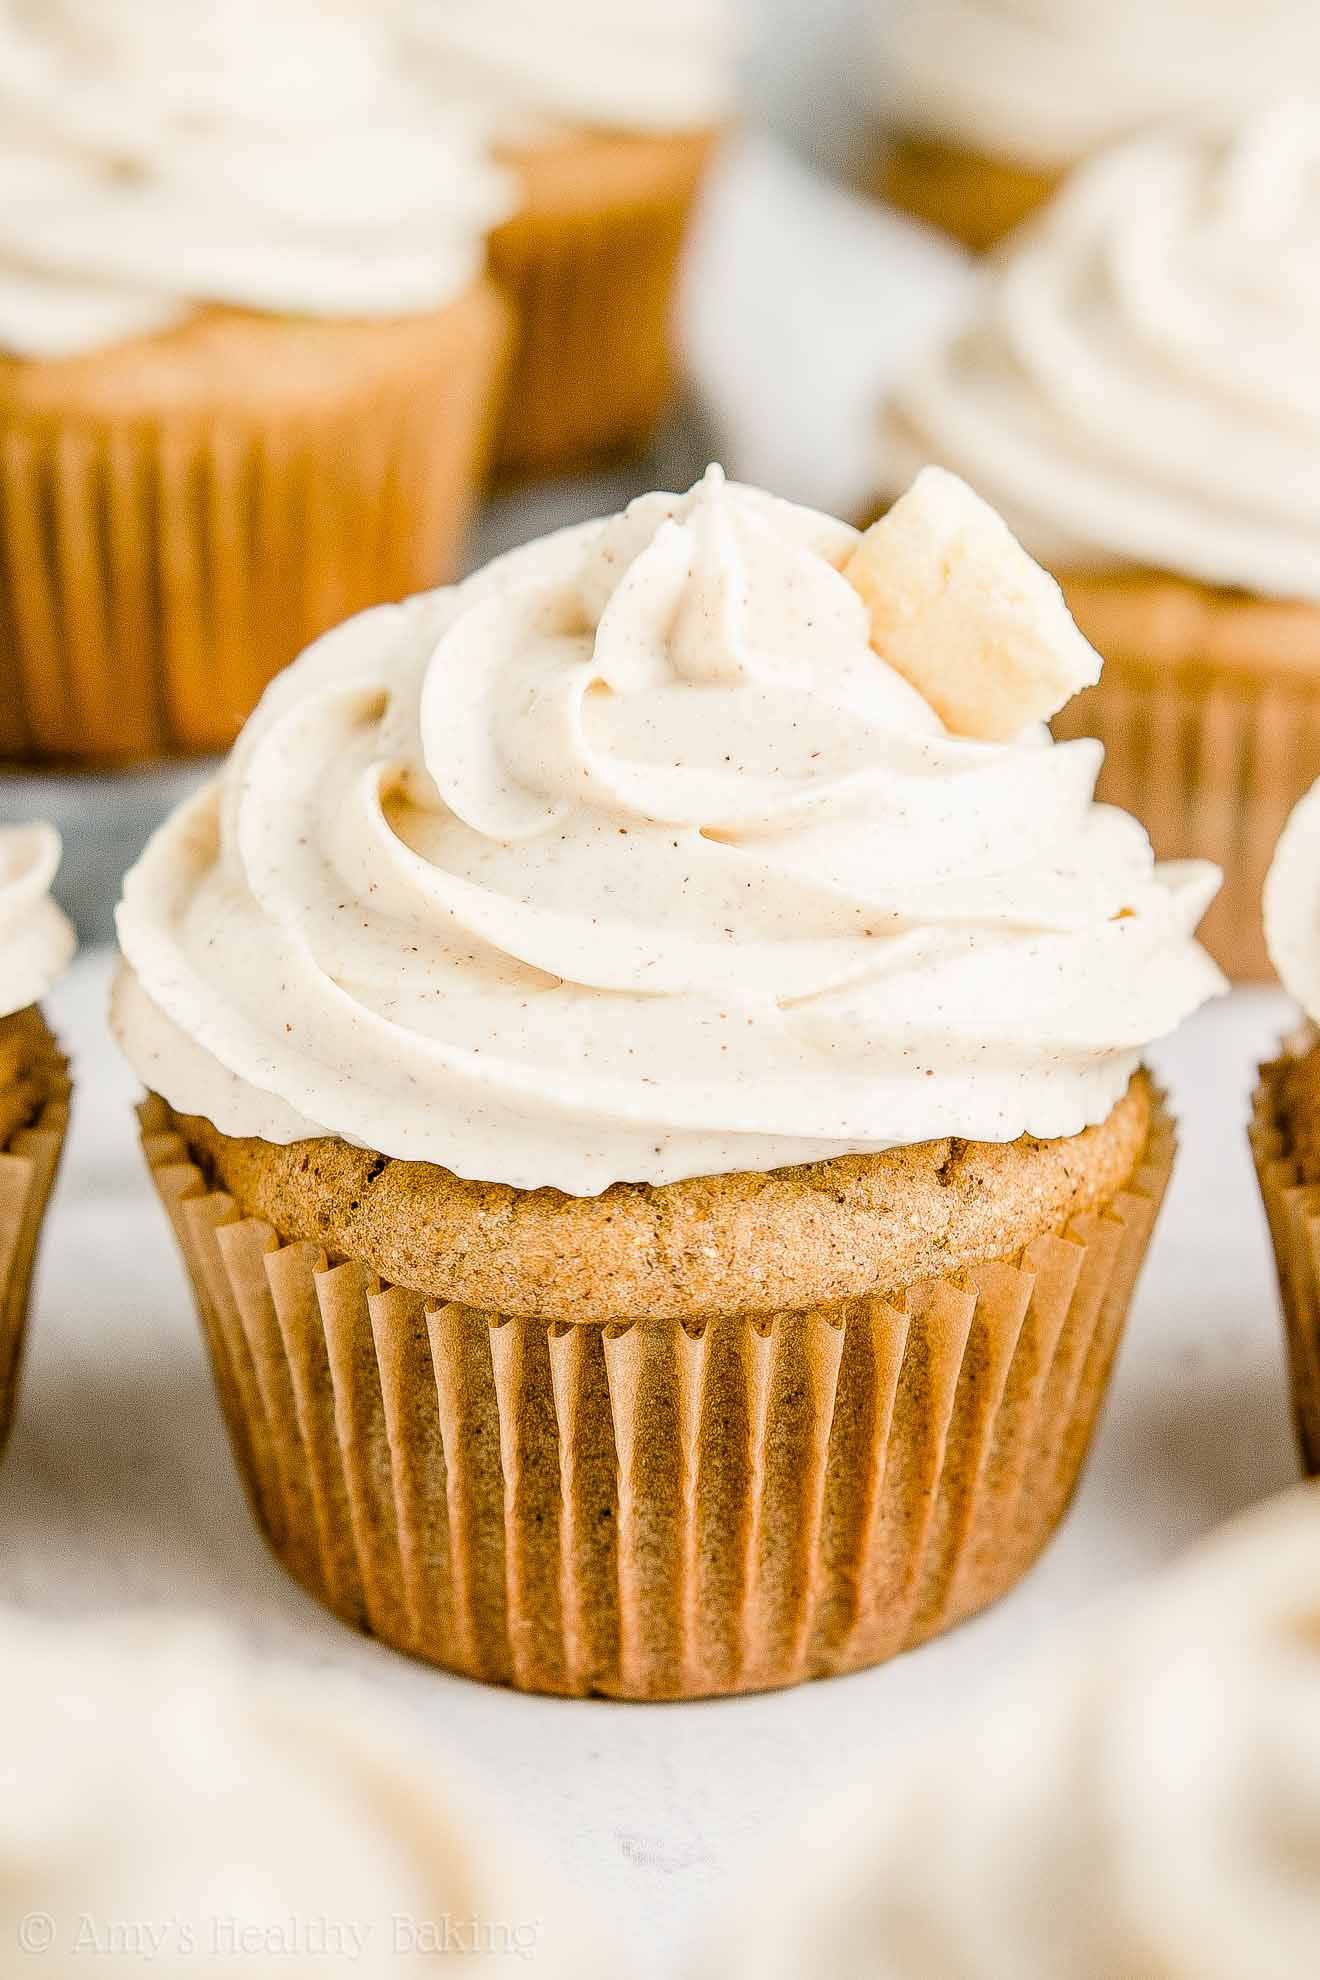 Healthy Low Calorie Spiced Apple Cupcakes with Cinnamon Greek Yogurt Frosting